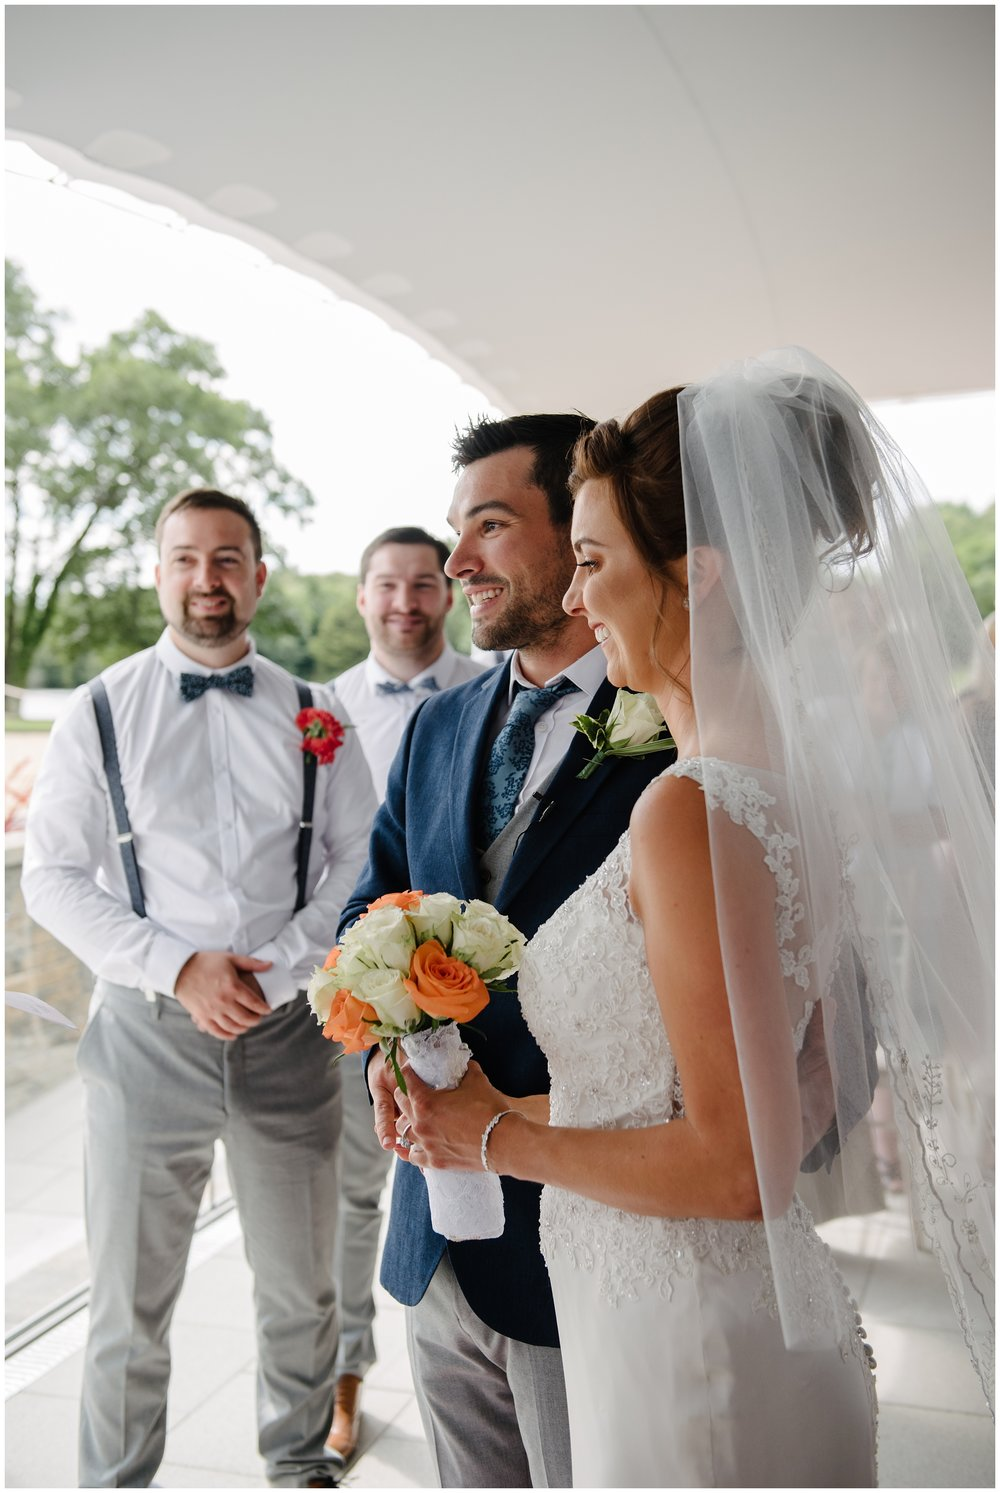 Lynsey_Andy_Rossharbour_Fermanagh_wedding_jude_browne_photography_0041.jpg